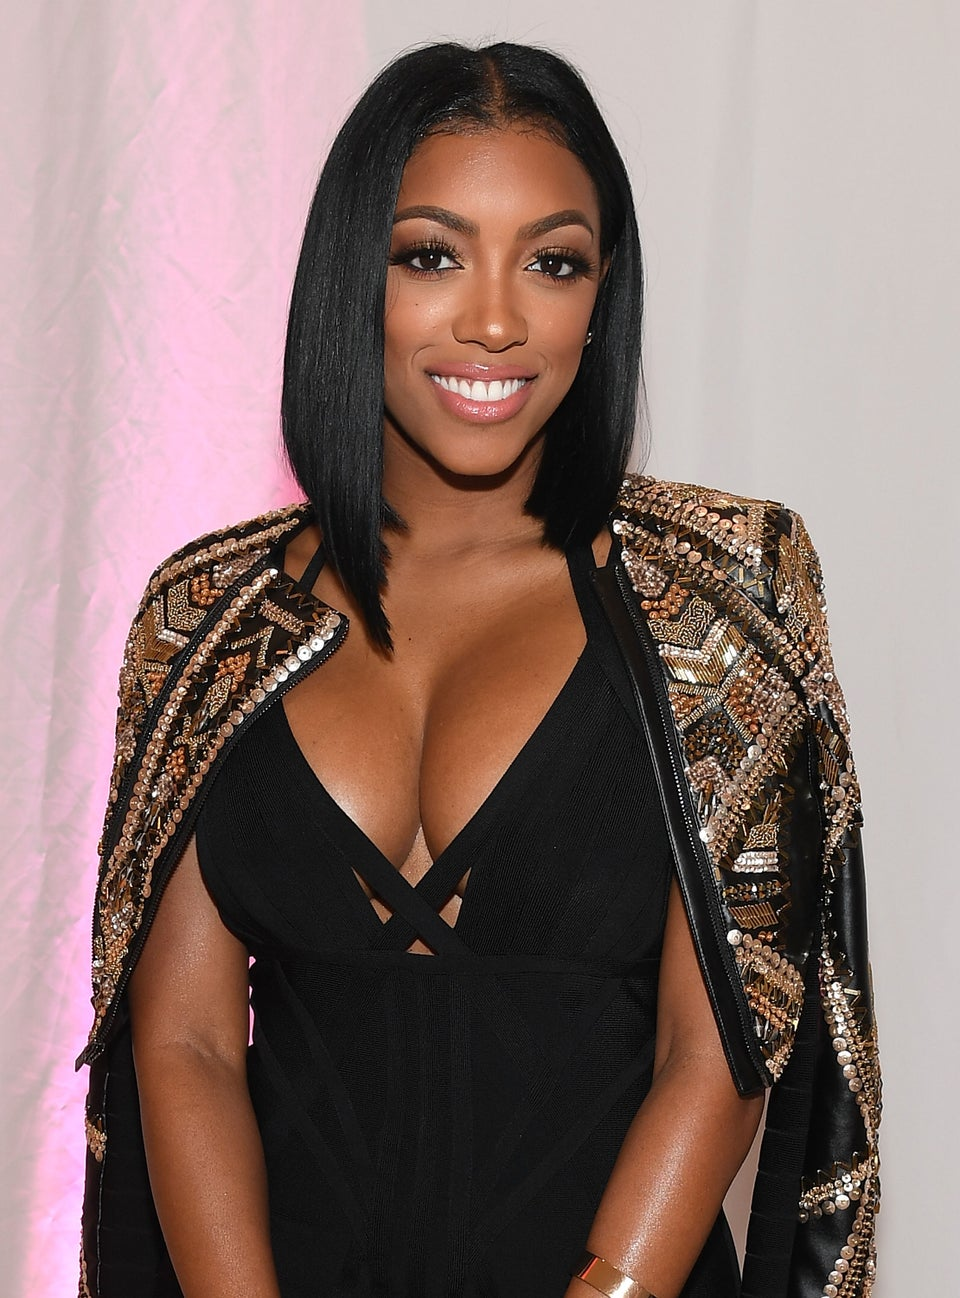 Porsha Williams And Other Women Who Have Successful Side Hustles